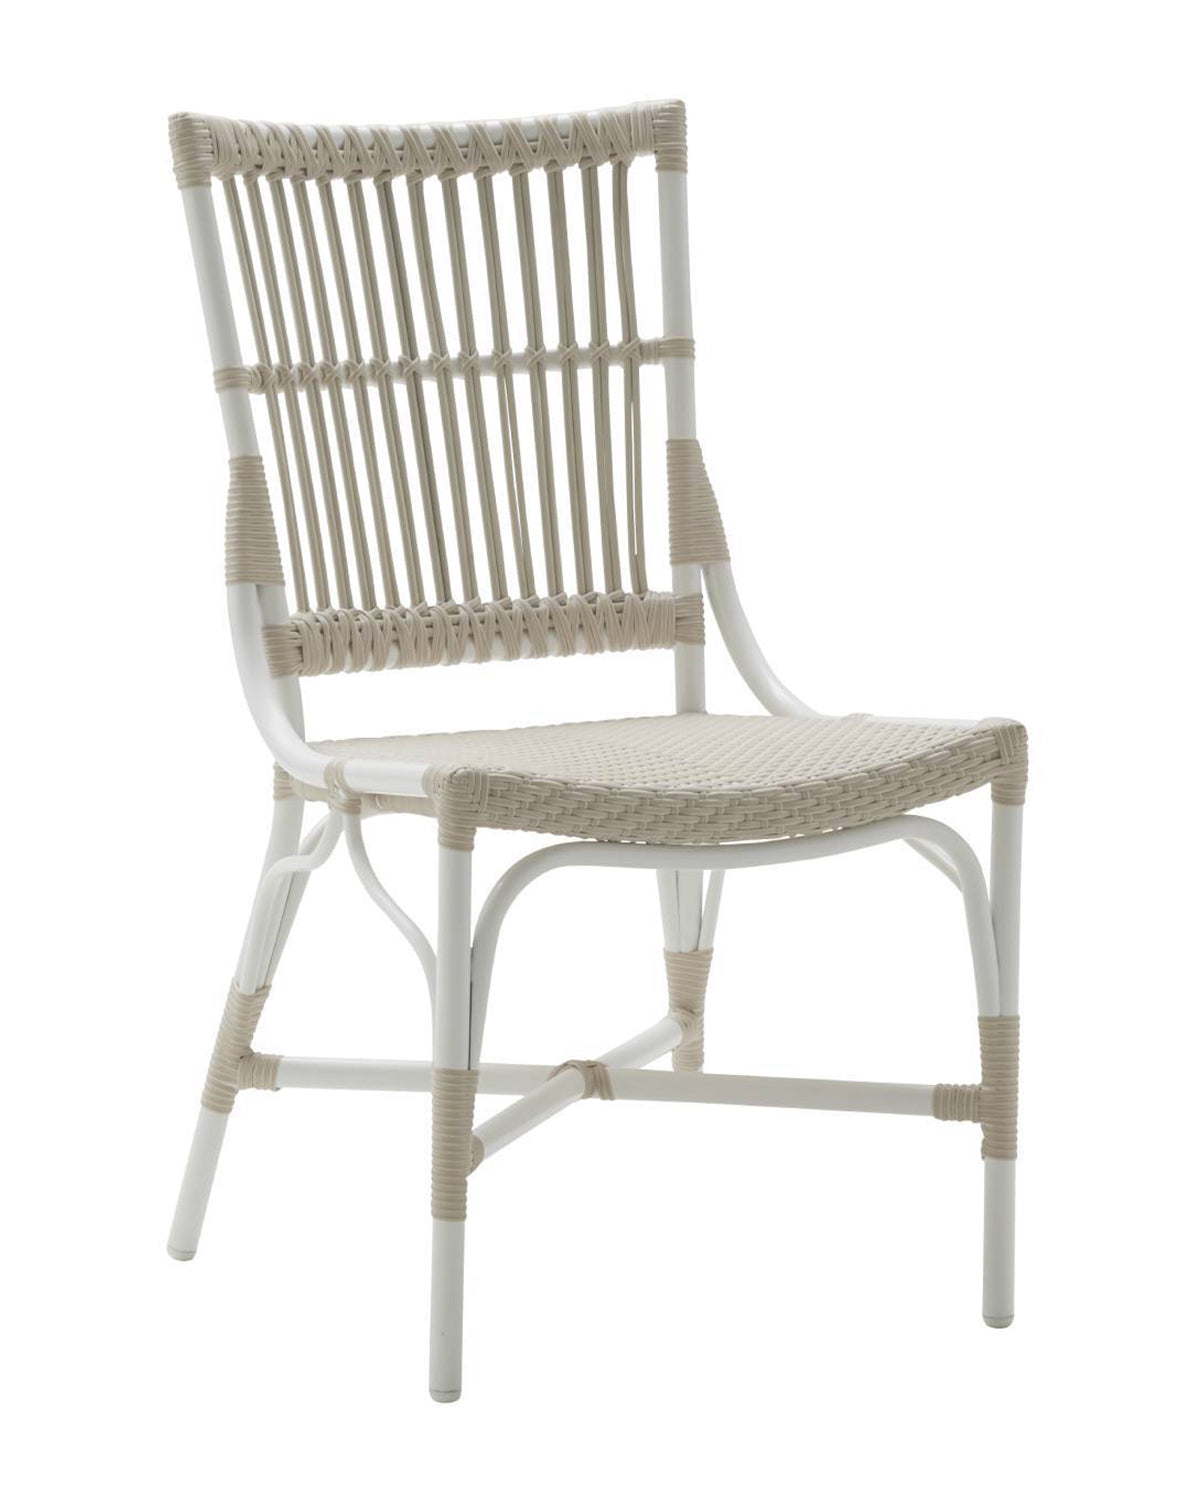 Outstanding Outdoor Jalen Chair Oatmeal Pabps2019 Chair Design Images Pabps2019Com